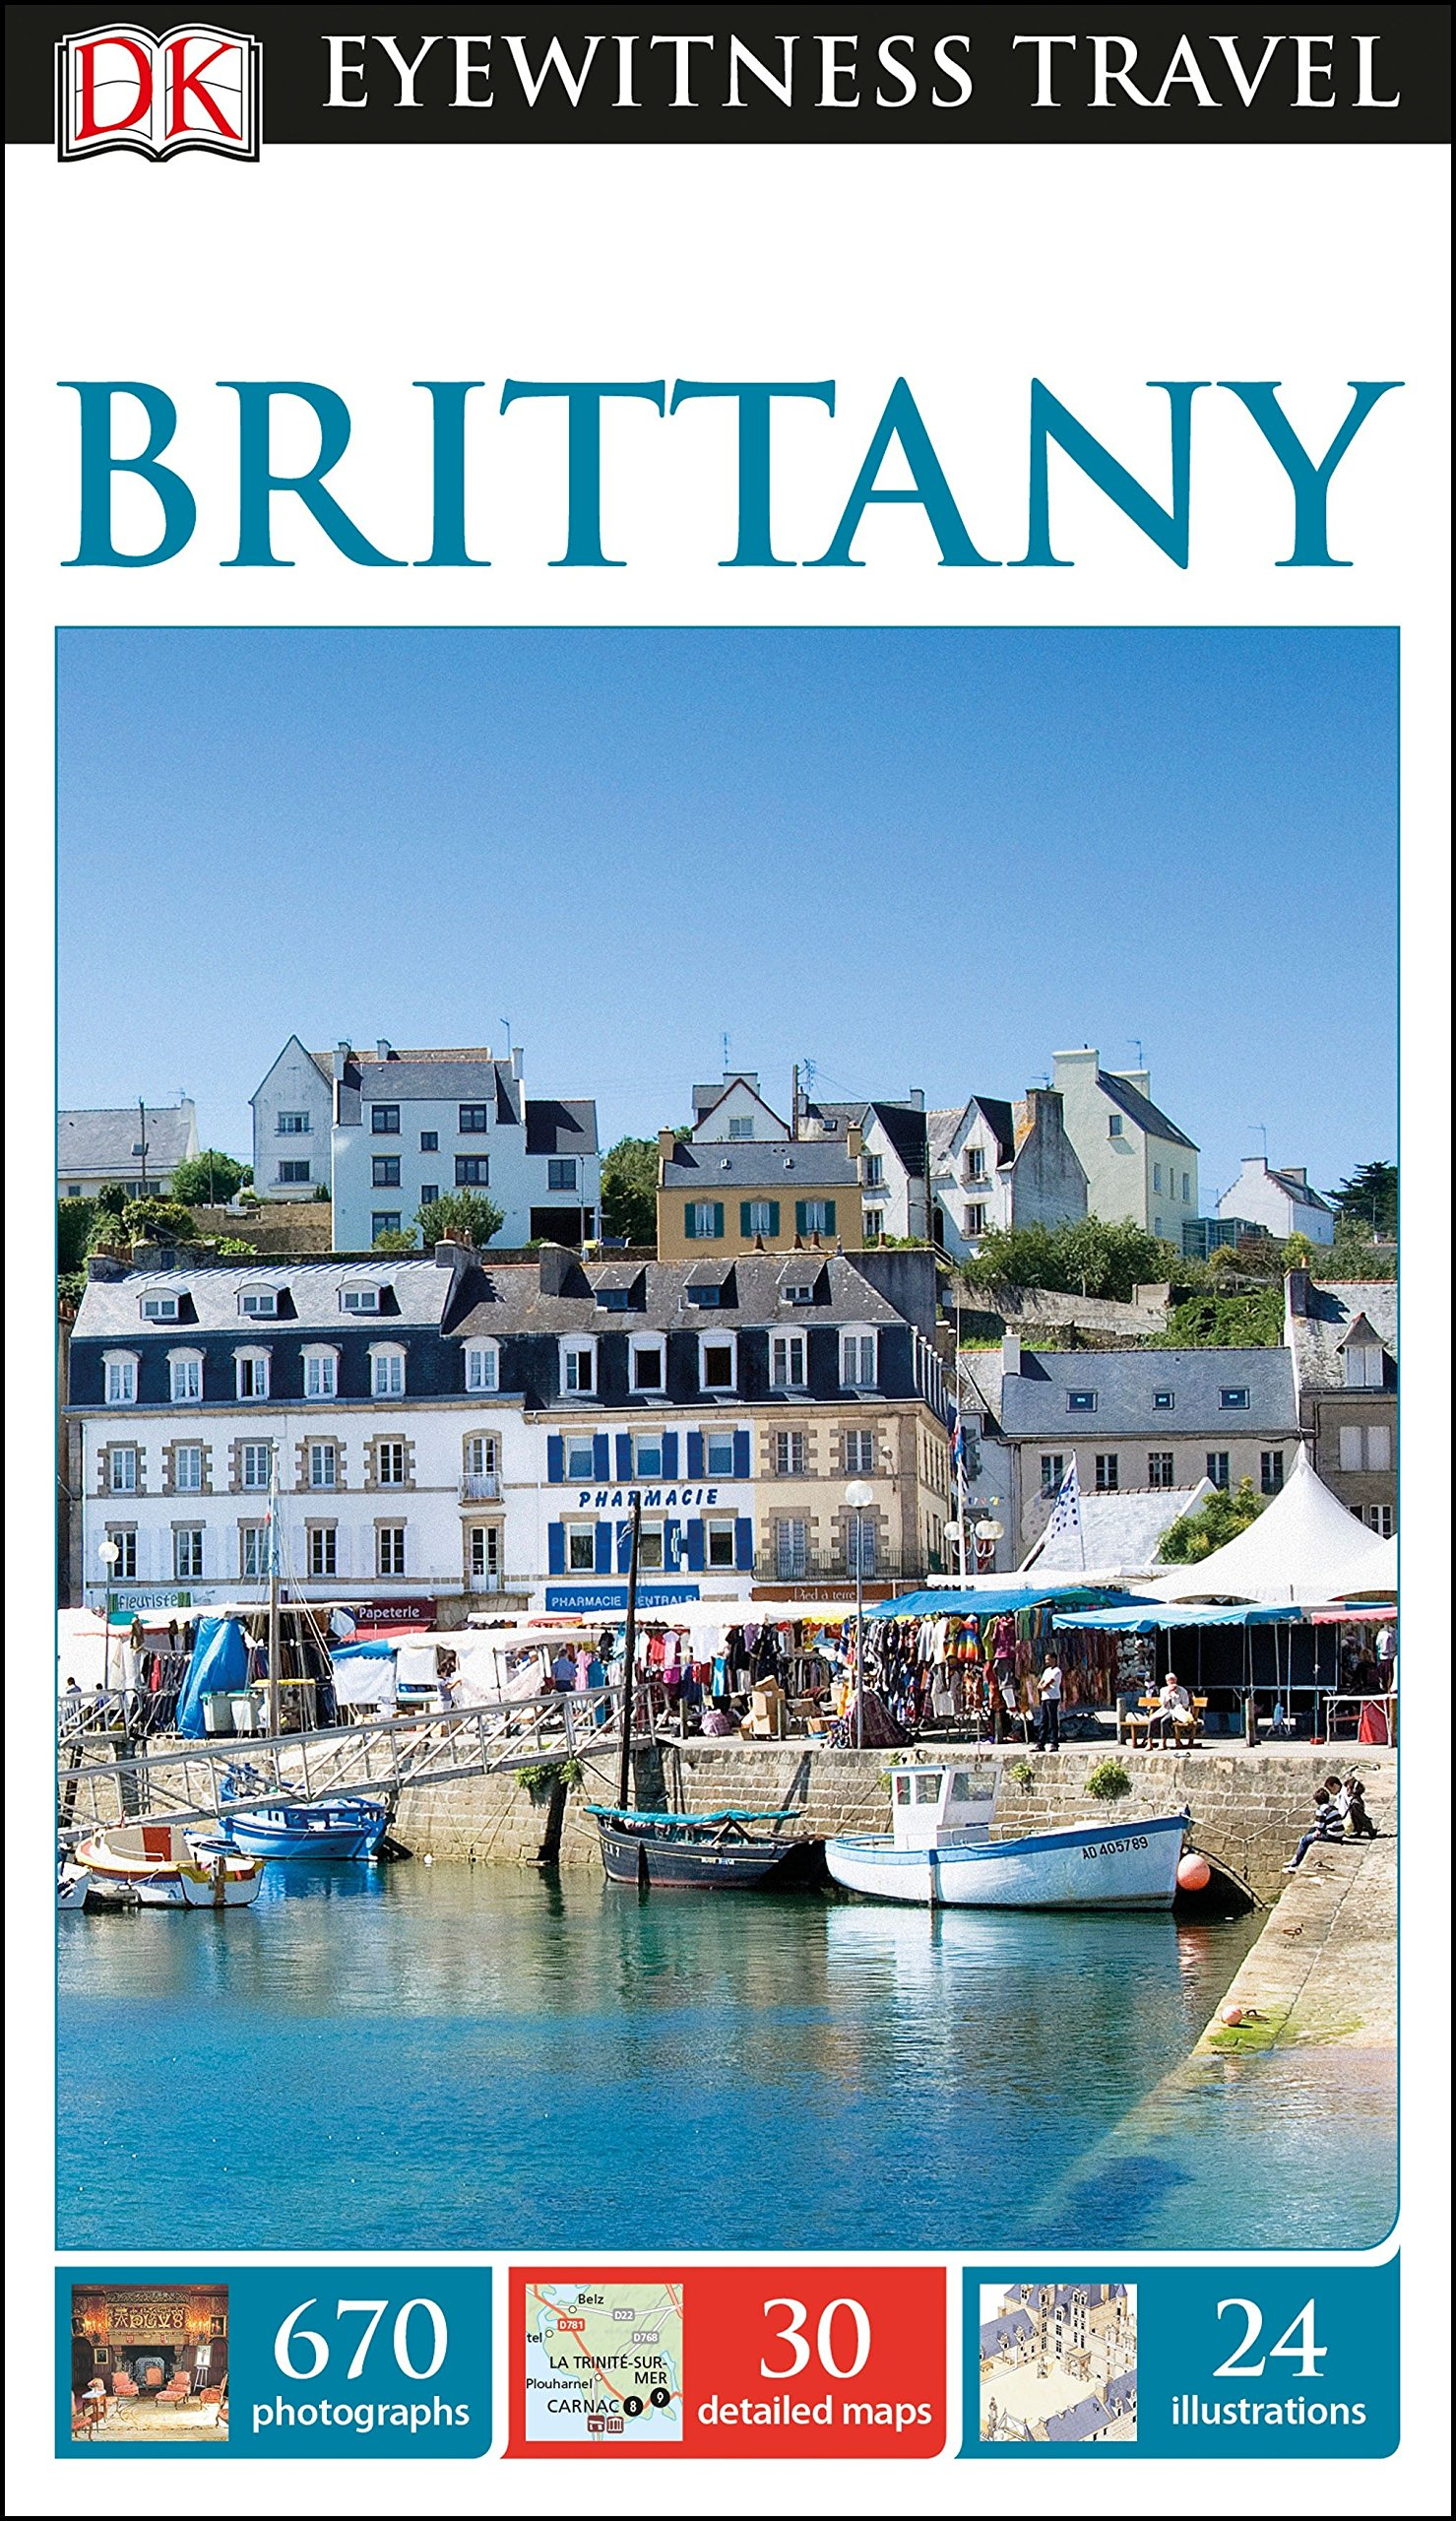 DK Eyewitness Travel Guide Brittany ebook